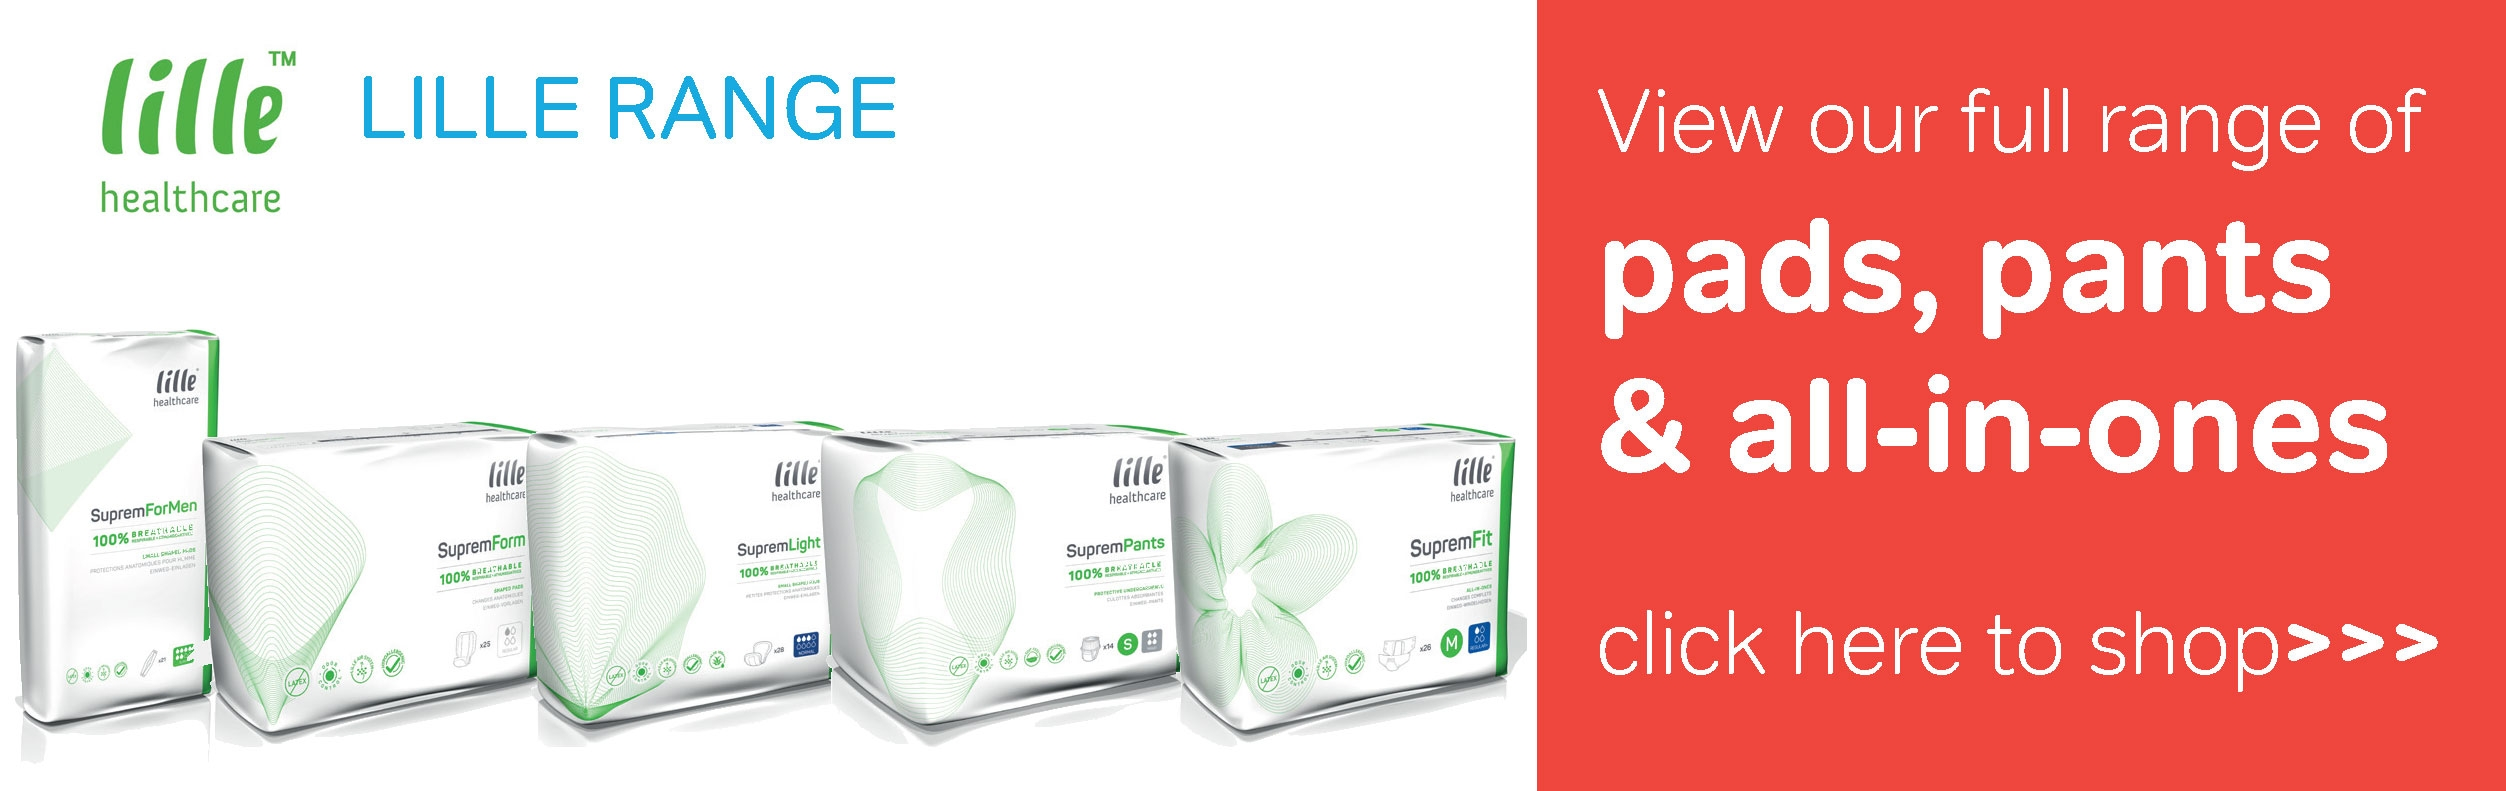 Lille Healthcare Incontinence Range